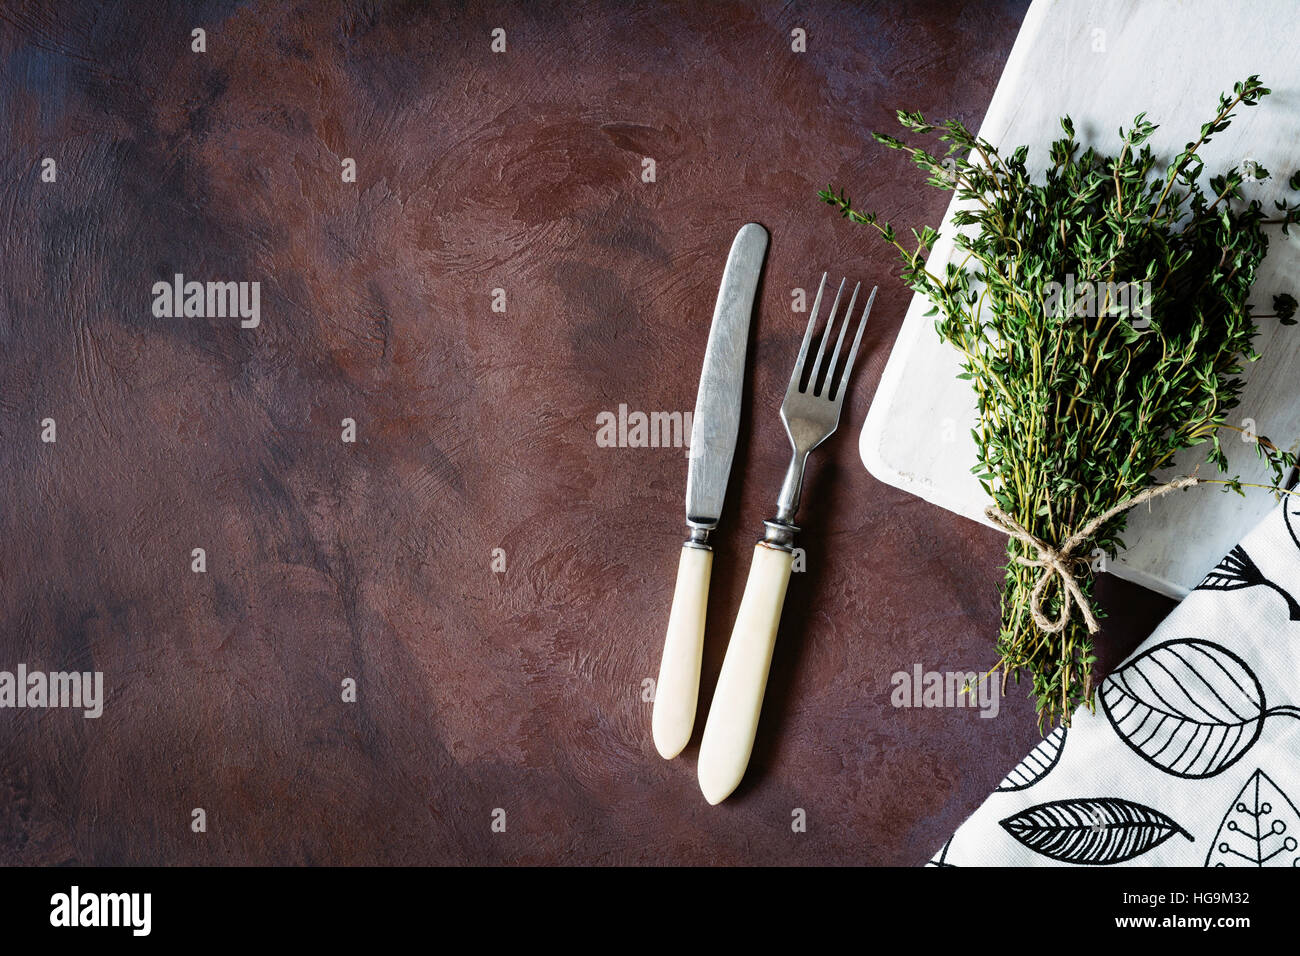 Vintage silverware with ivory handle, dark textile, wooden cutting board and bunch of fresh thyme on dark rusty - Stock Image